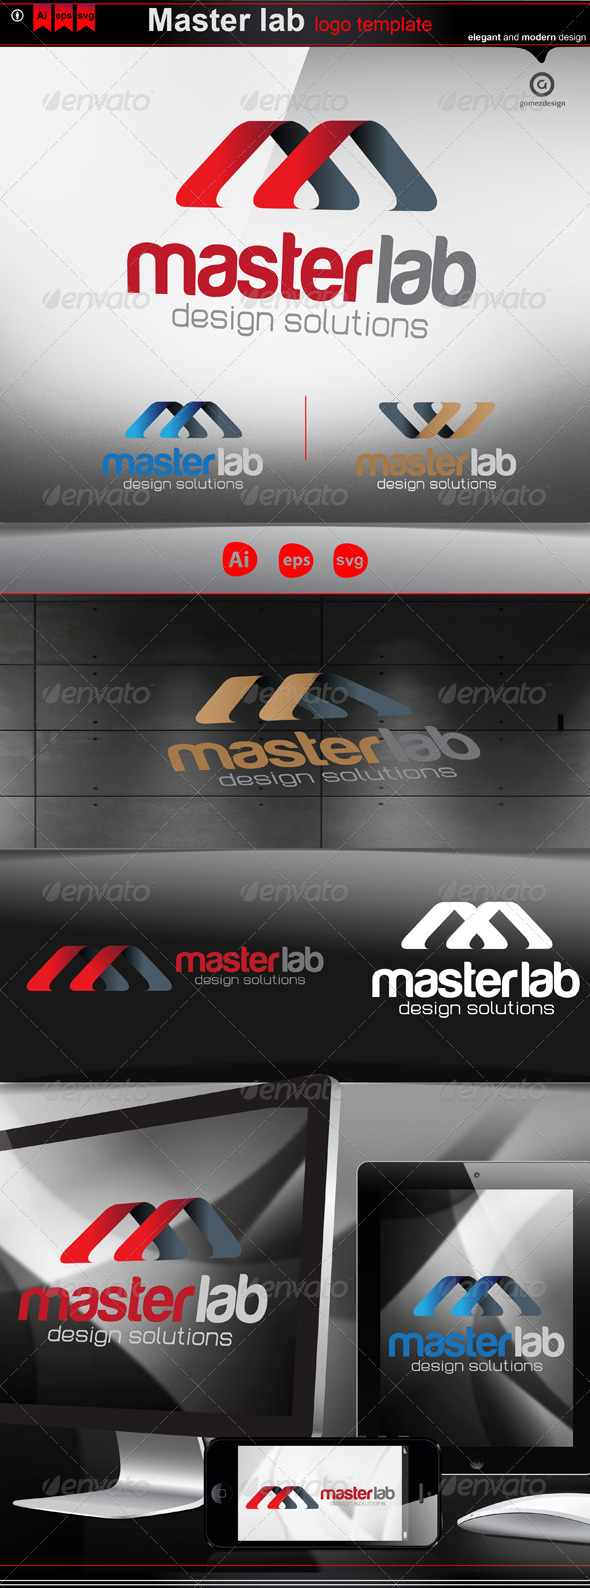 Master lab - Logo Templates